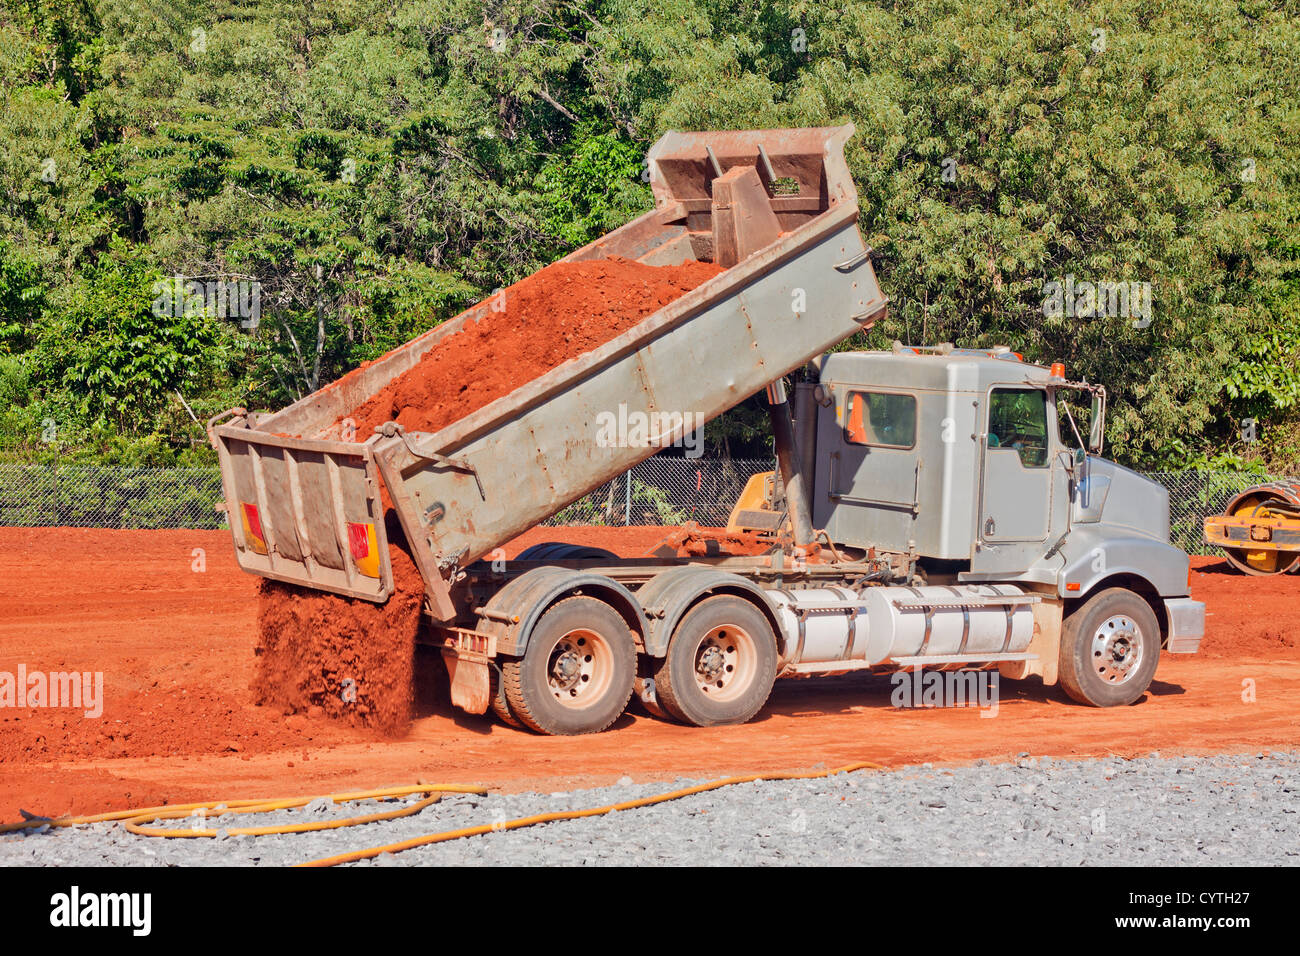 A tip truck is dumping red dirt or soil at a construction site - Stock Image